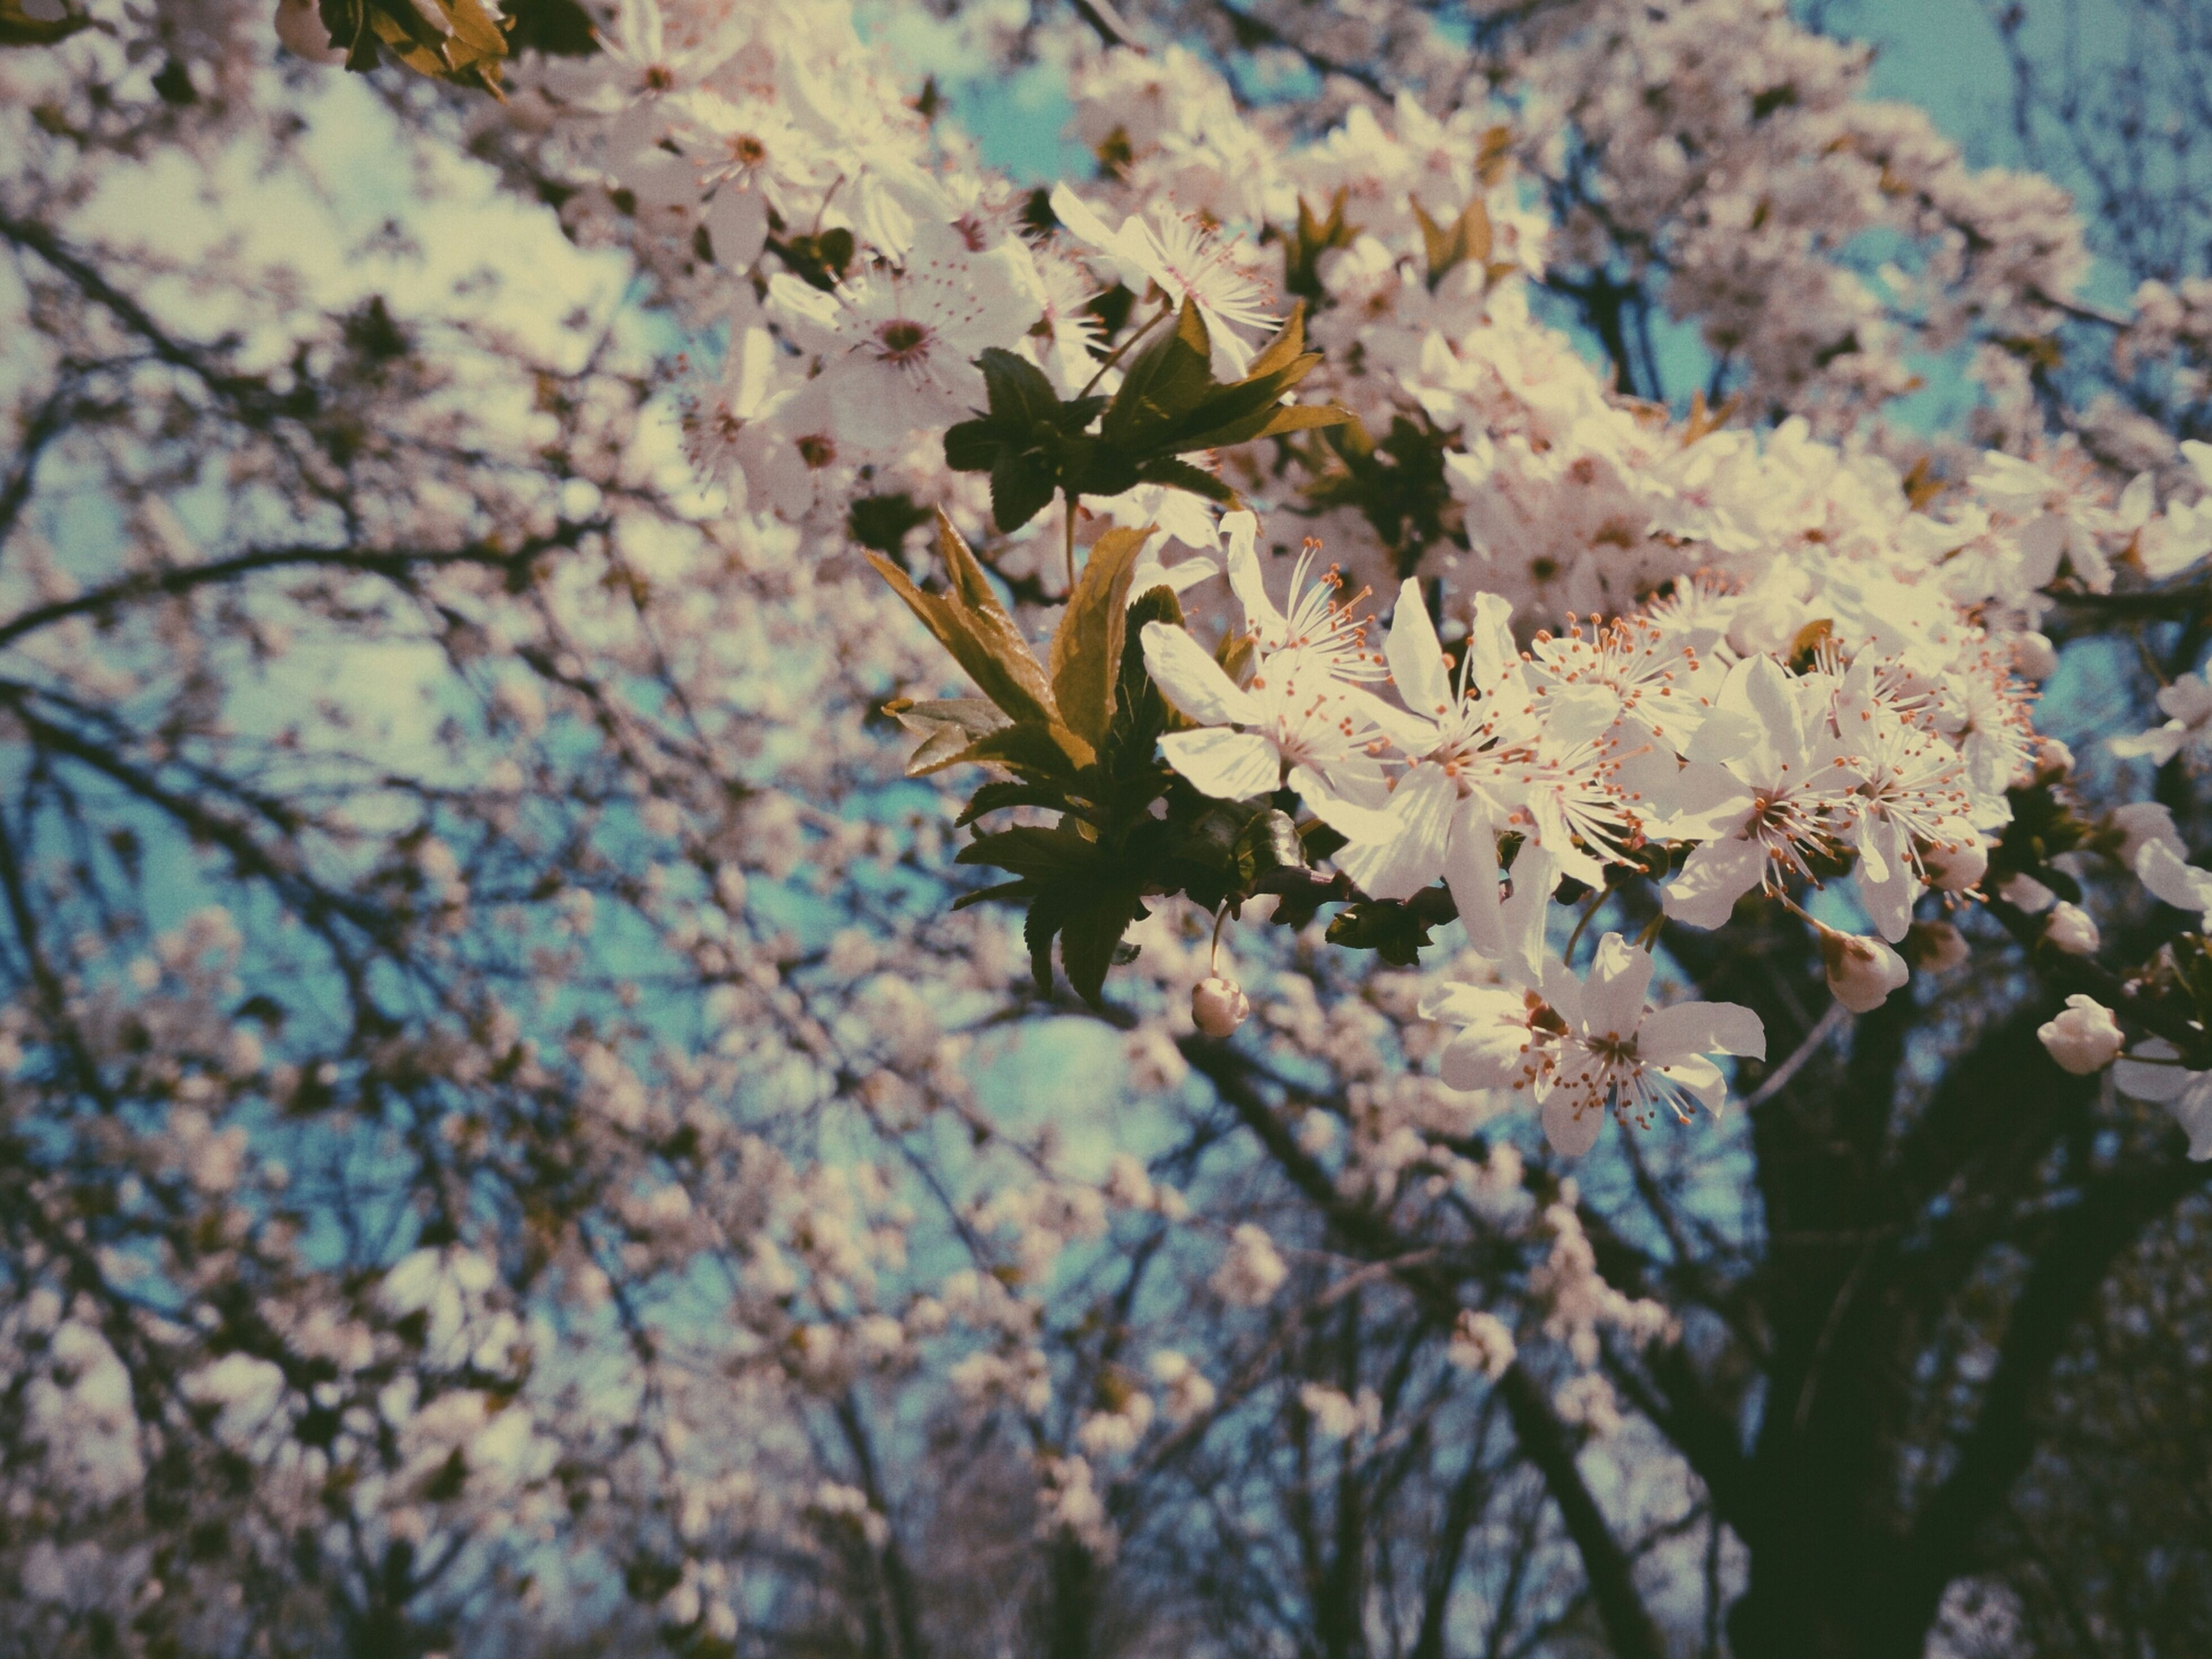 flower, growth, freshness, fragility, beauty in nature, branch, nature, focus on foreground, tree, close-up, blossom, blooming, plant, in bloom, selective focus, petal, springtime, day, outdoors, botany